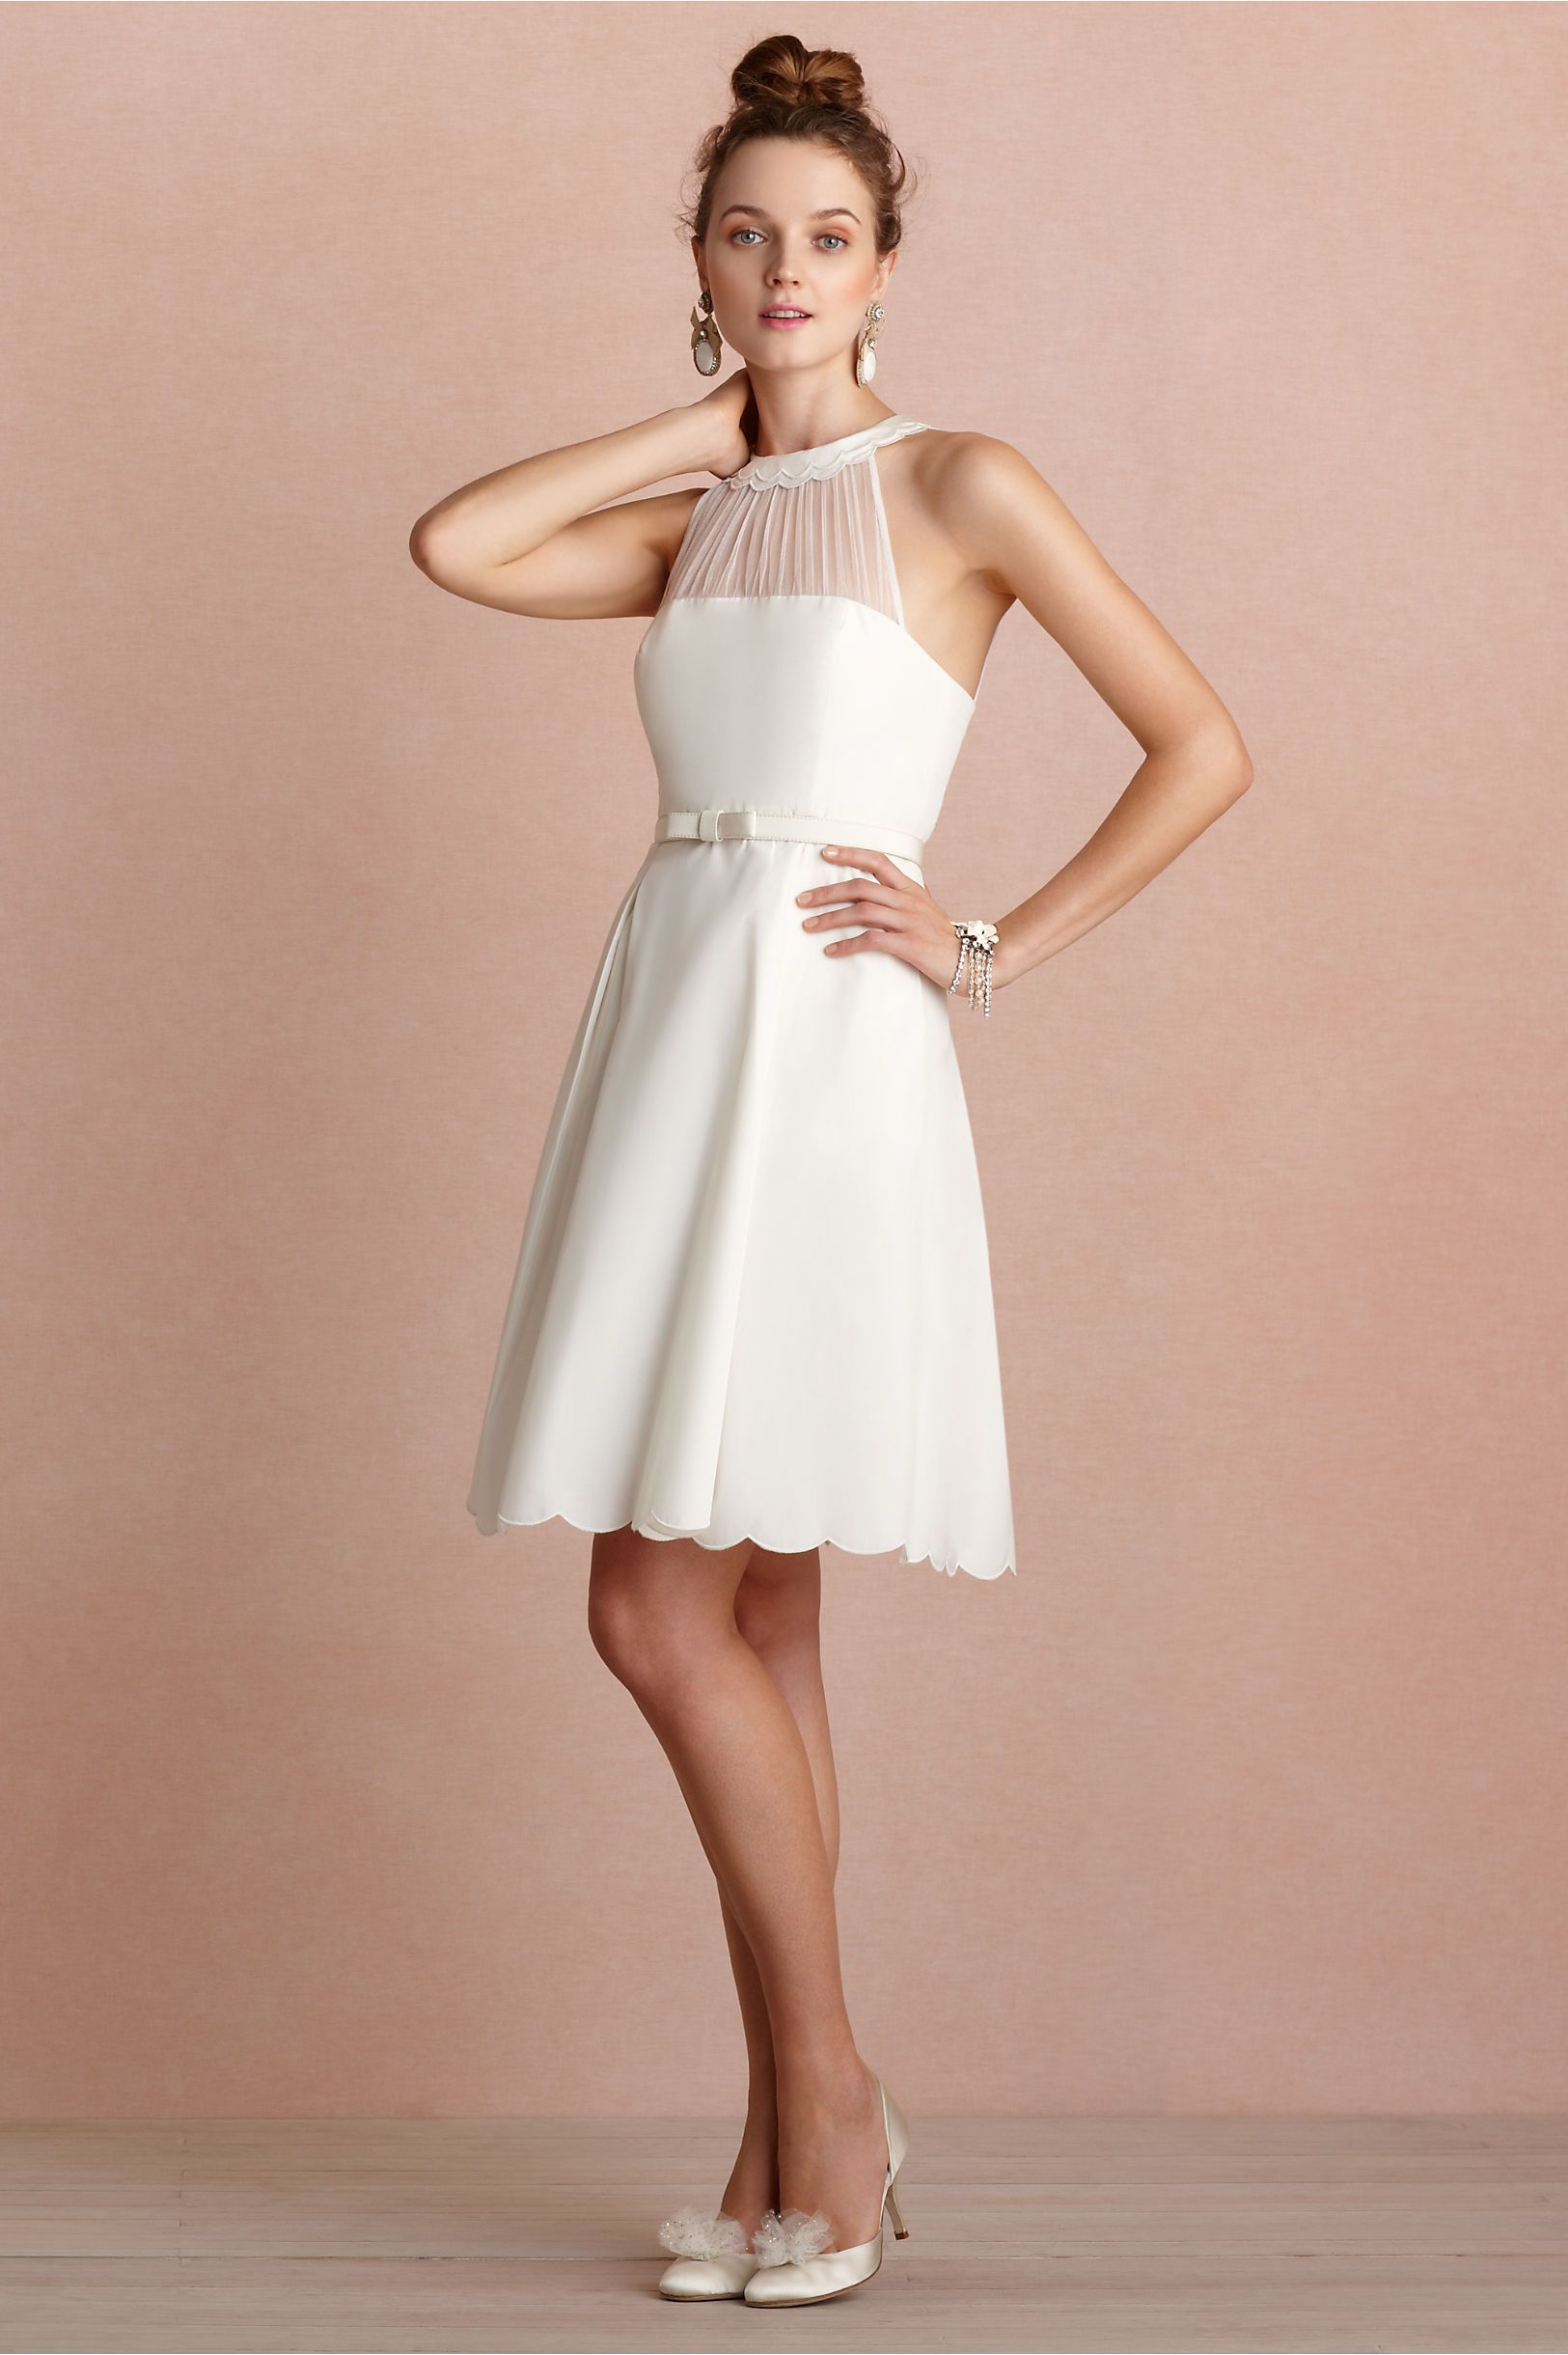 dcaa4478e417 ... wedding dresses. To my bride-to-be friends...did you know Anthropologie  has a bridal site  You re welcome!  )